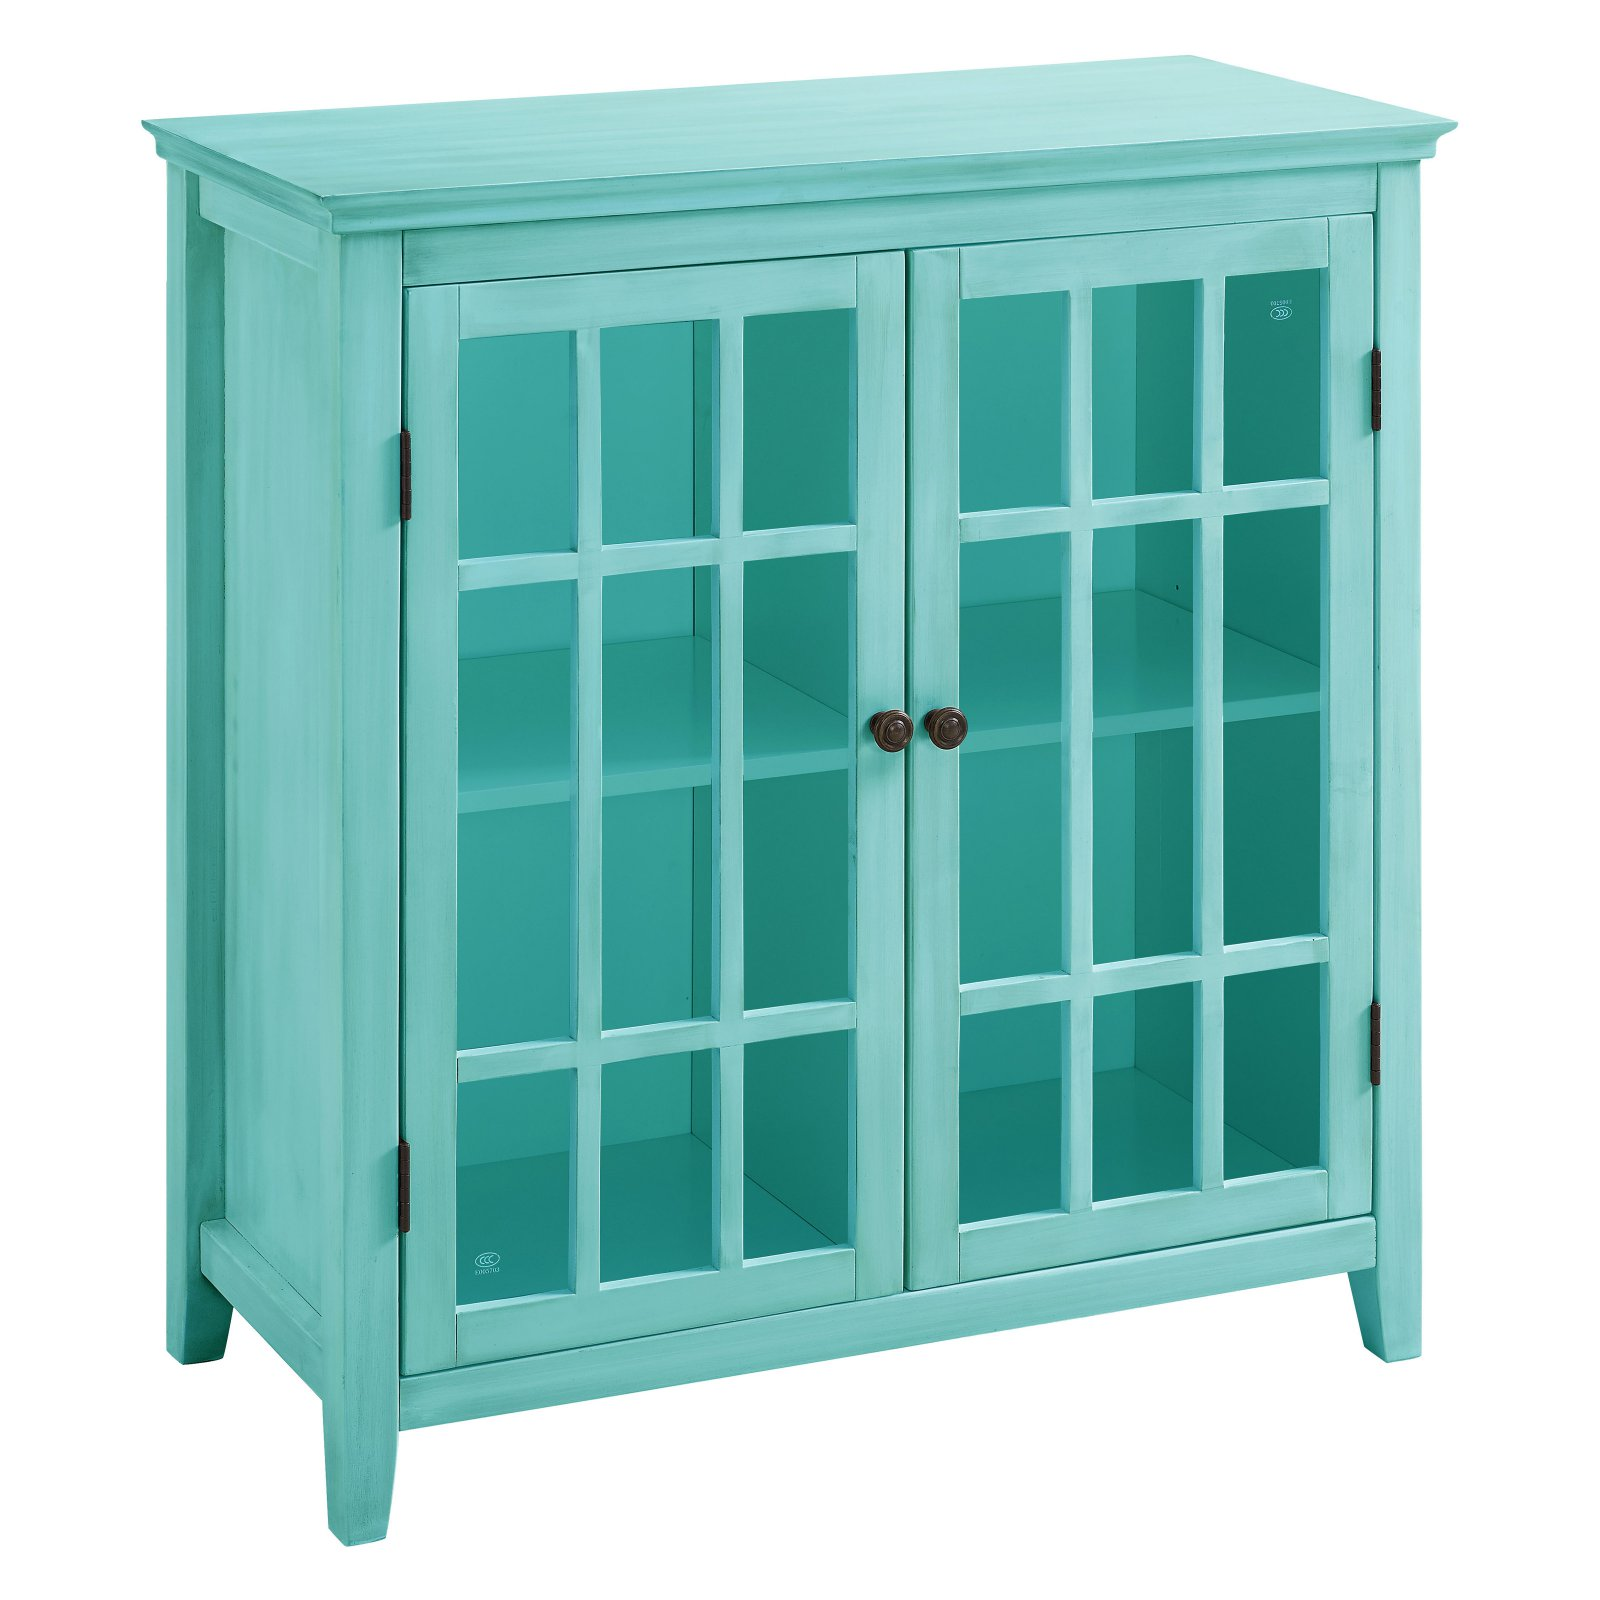 Linon Home Decor Largo Antique Double Door Cabinet, Multiple Colors